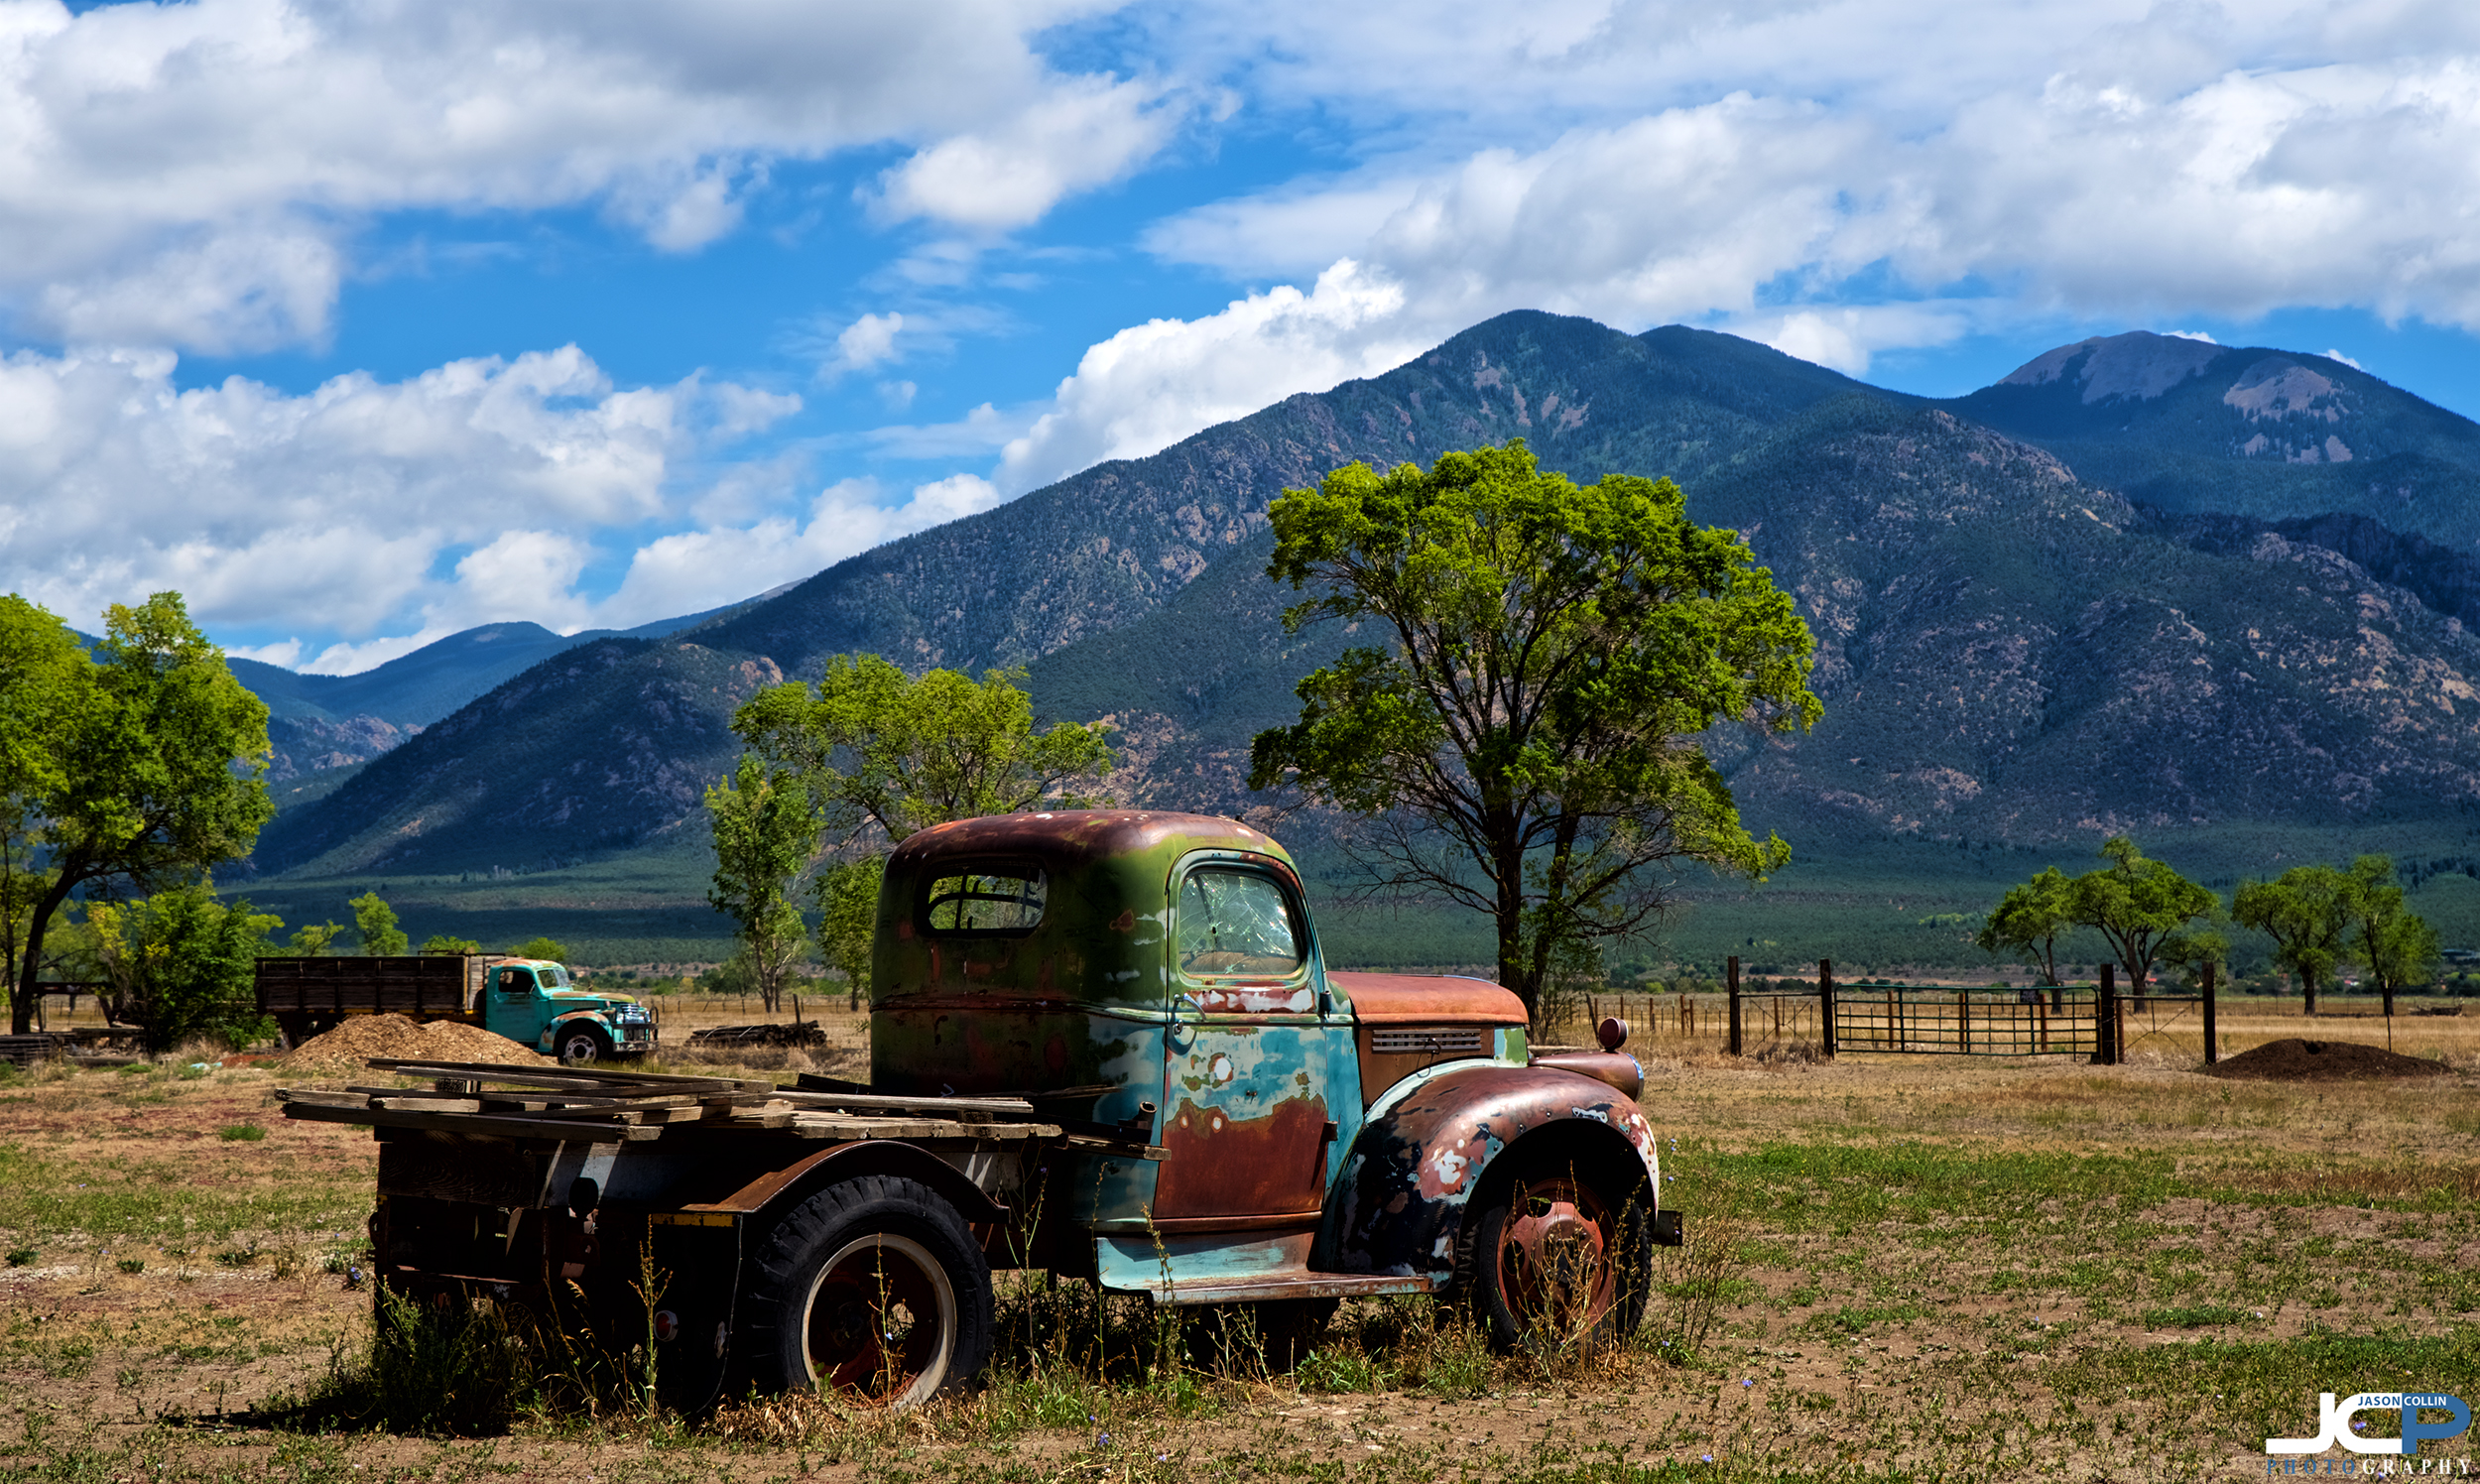 Mountains and forgotten truck in Taos, New Mexico